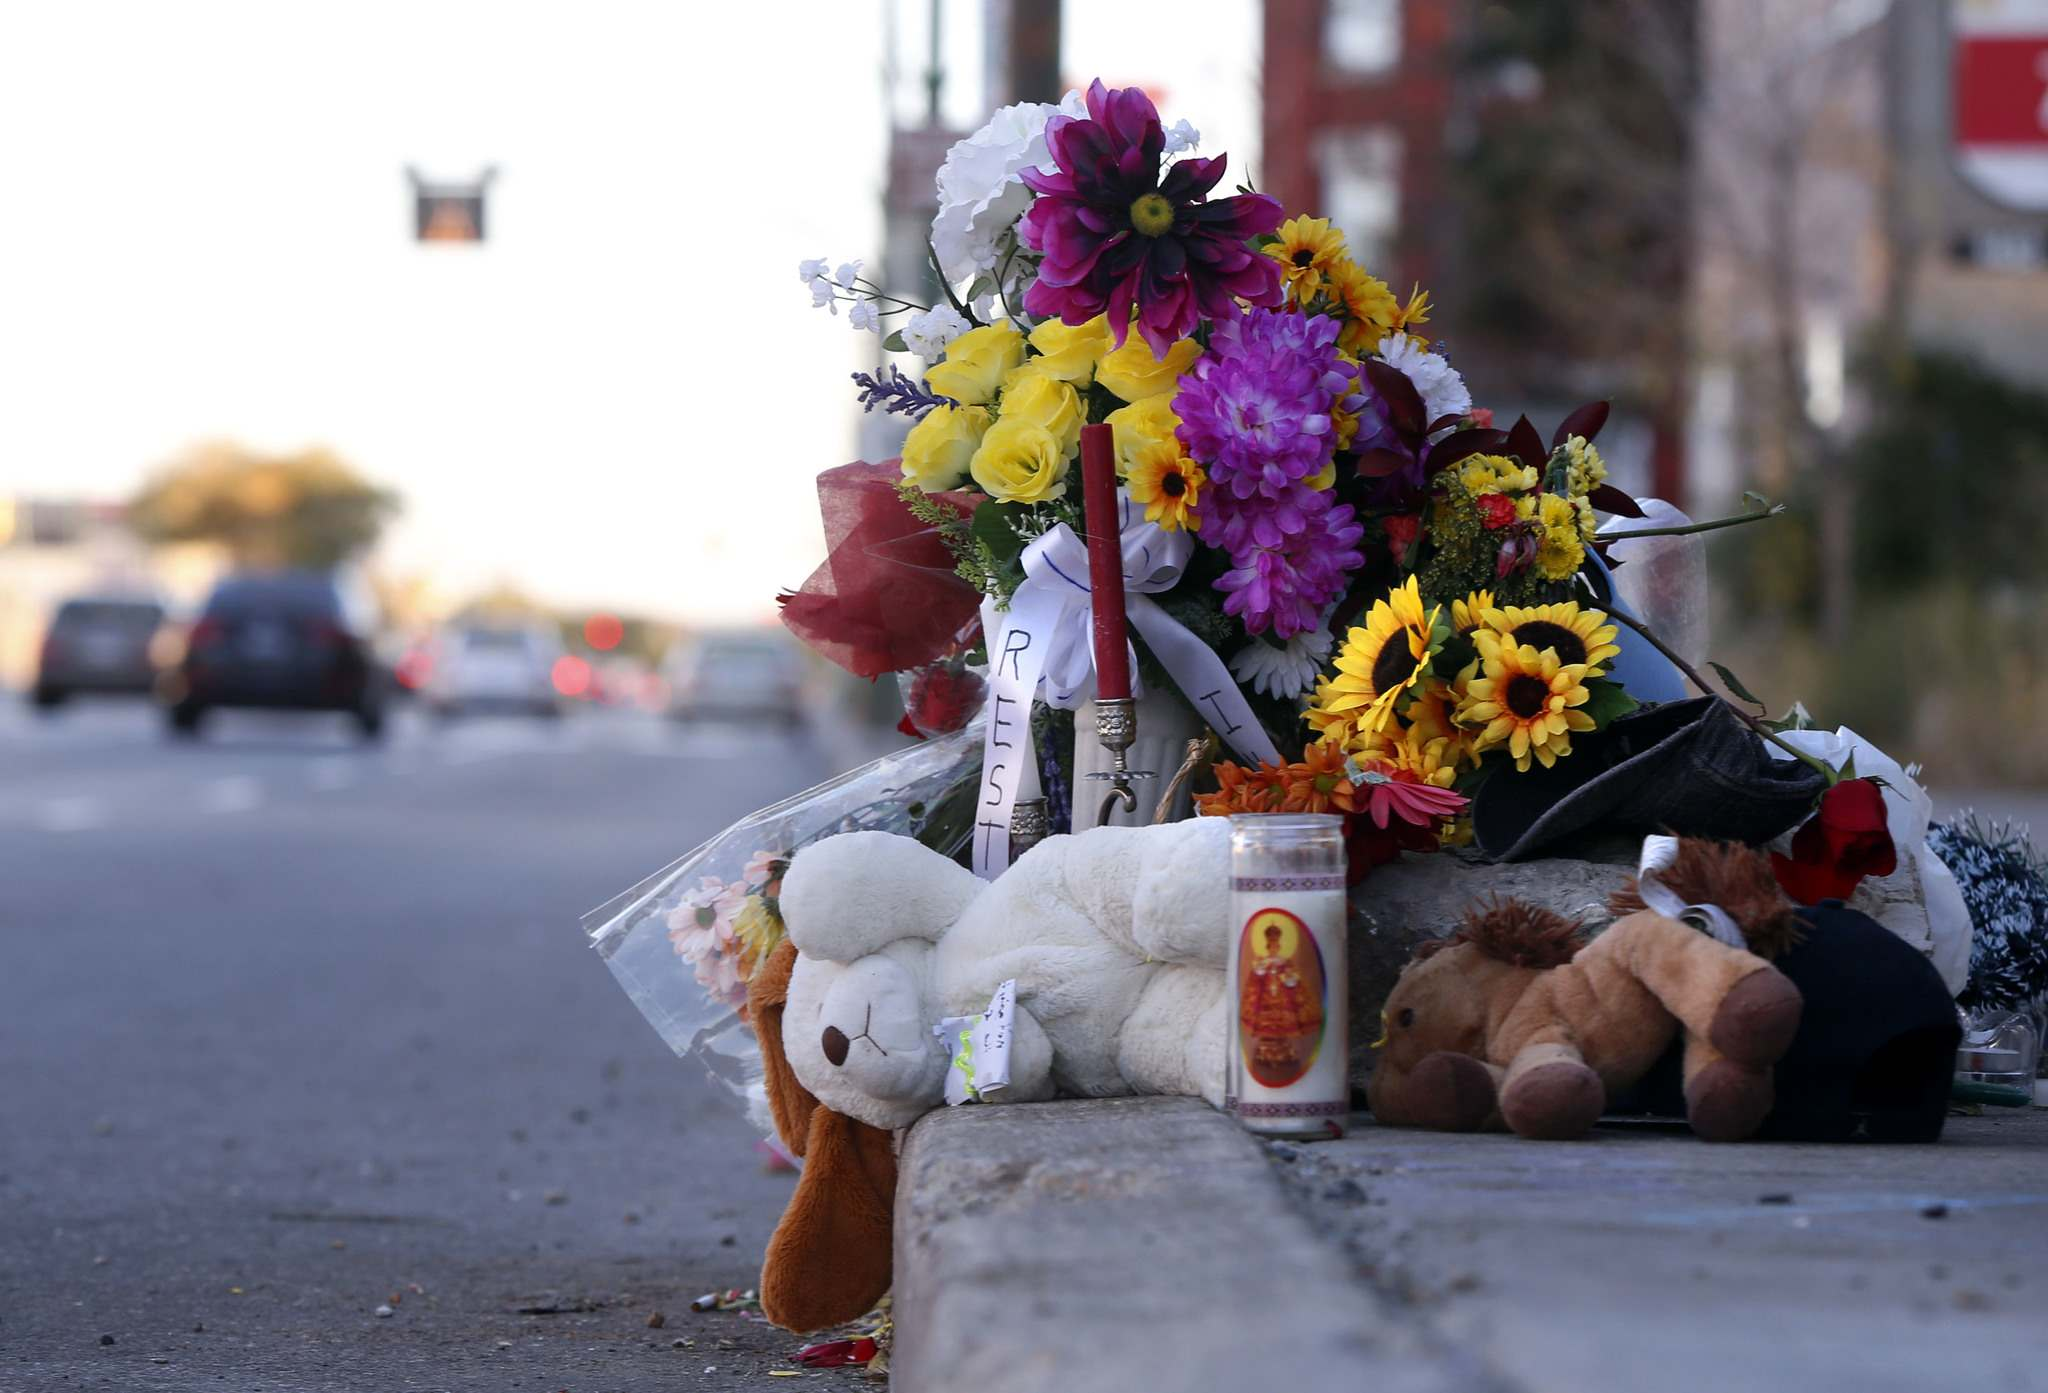 A memorial on Main Street near Sutherland Ave. for 23-year-old Cody Severight.